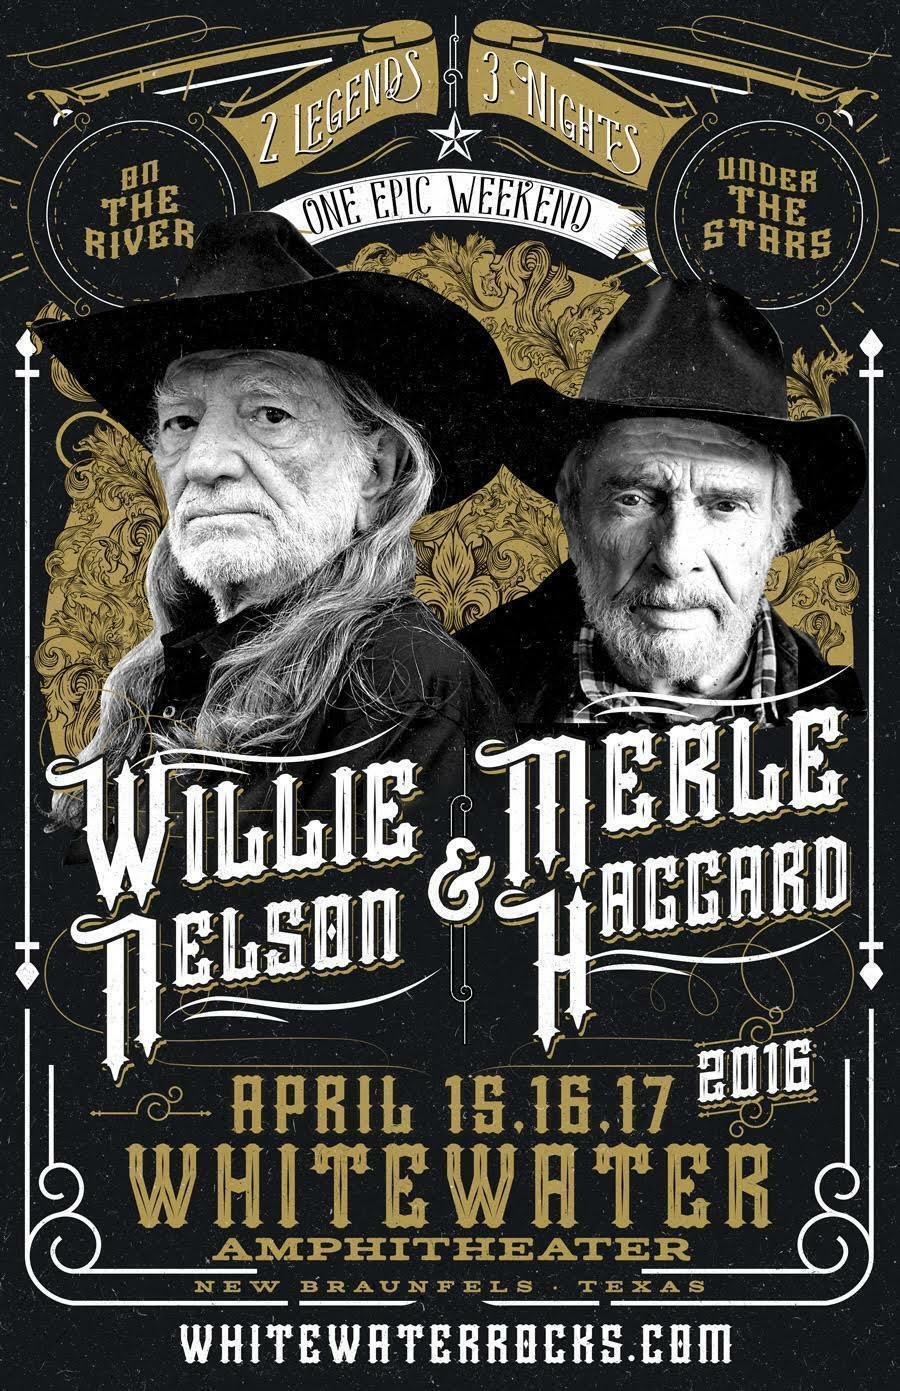 WILLIE NELSON MERLE HAGGARD 2016 WHITEWATER AMPHITHEATER CONCERT TOUR POSTER - $19.99